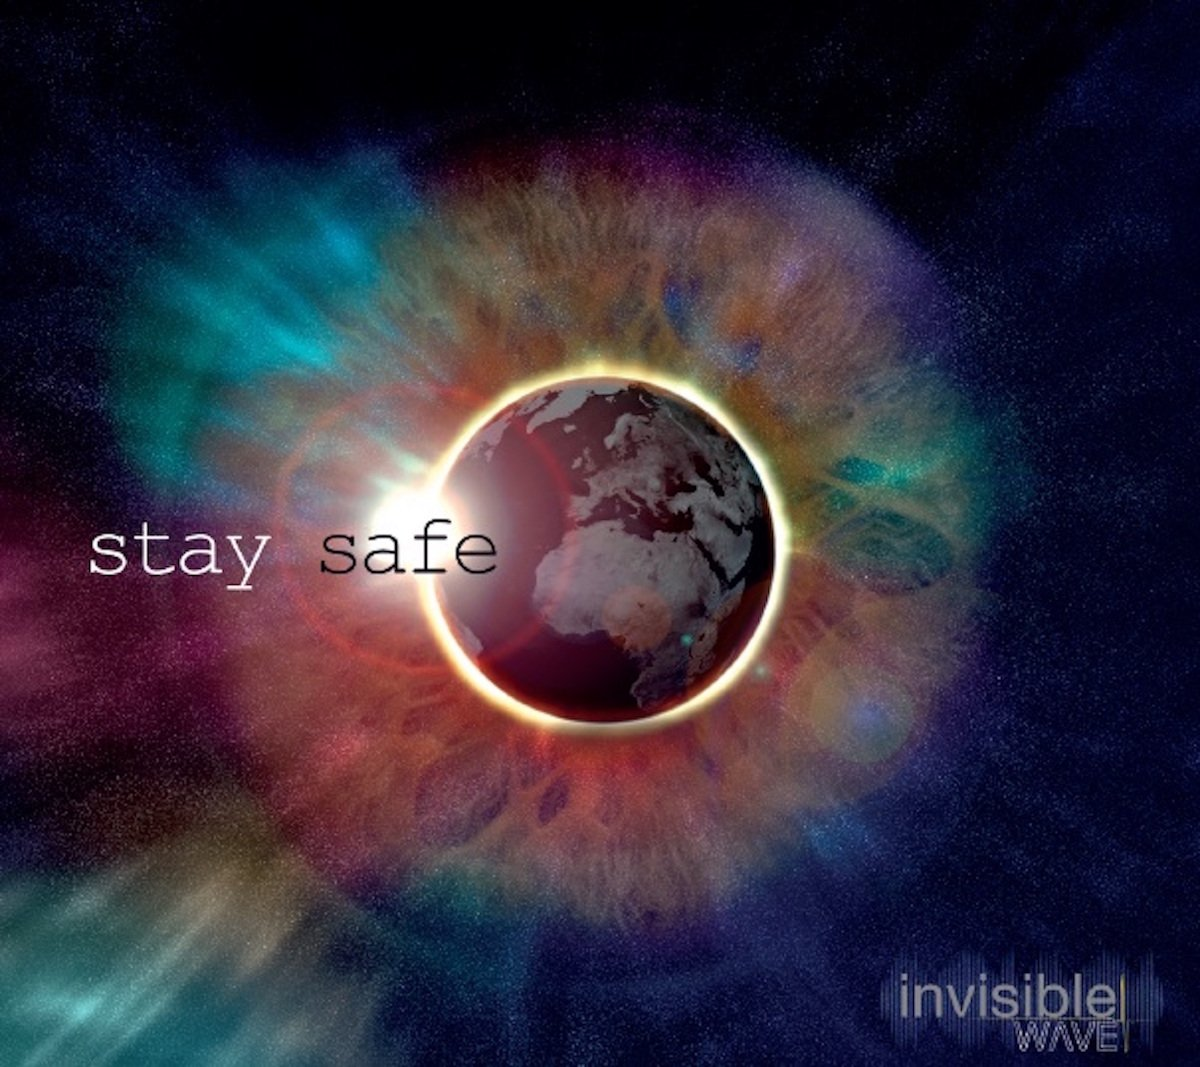 invisible-wave-stay-safe